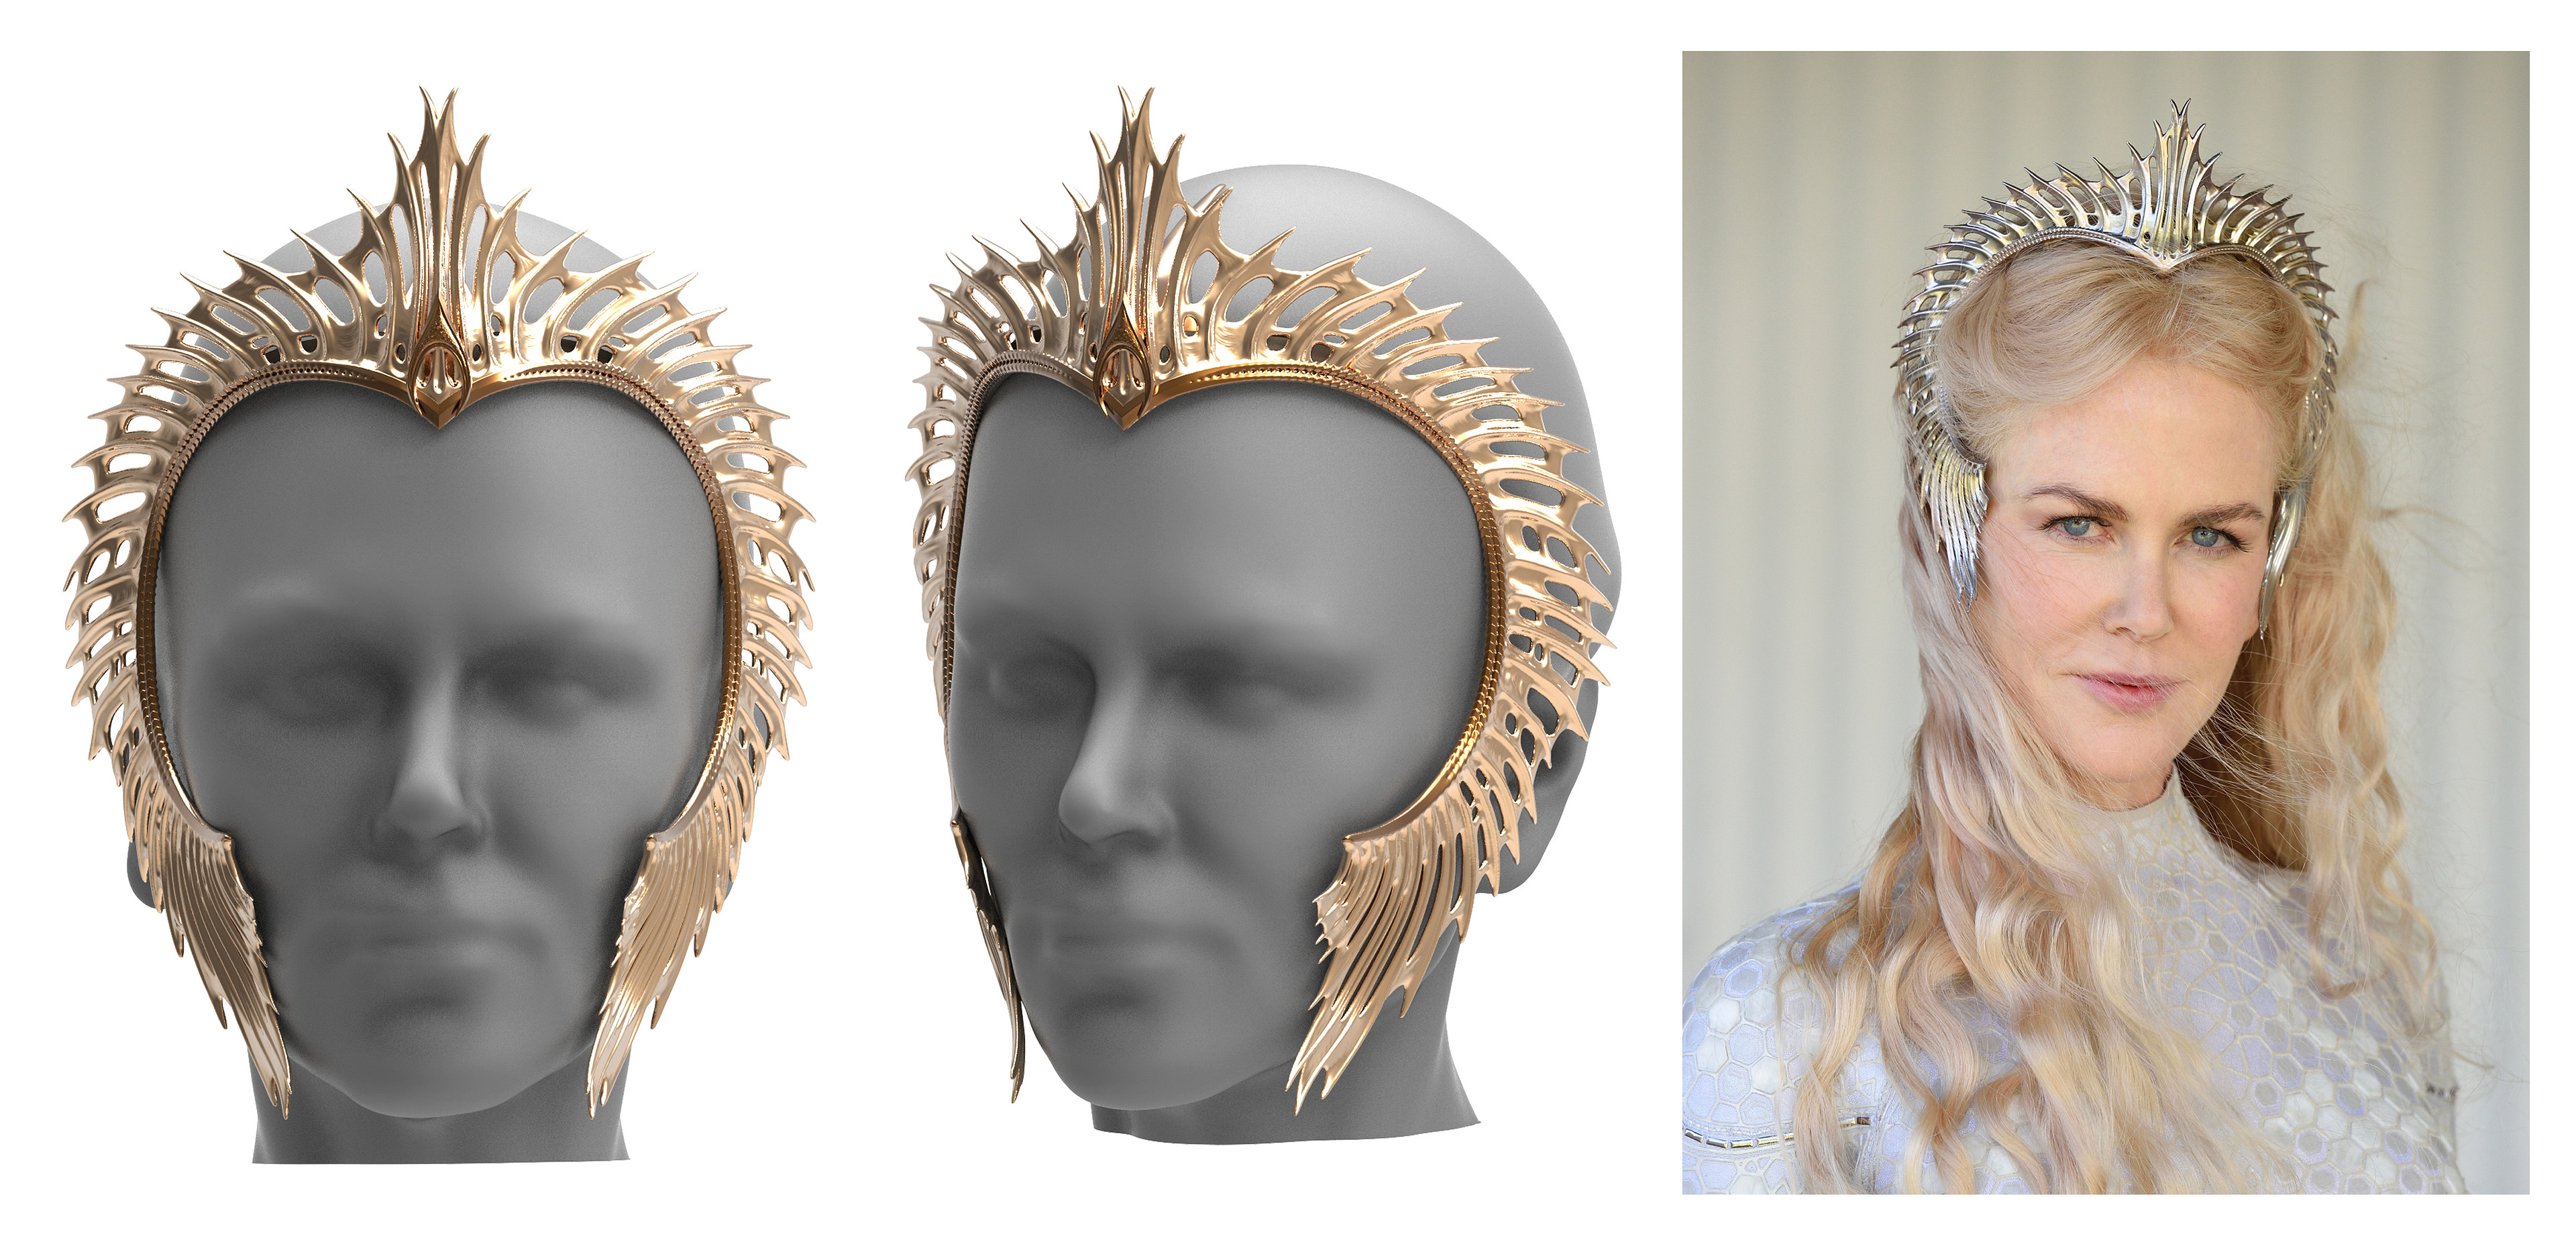 Queen Atlanna - crown 3d modelled and 3d printed